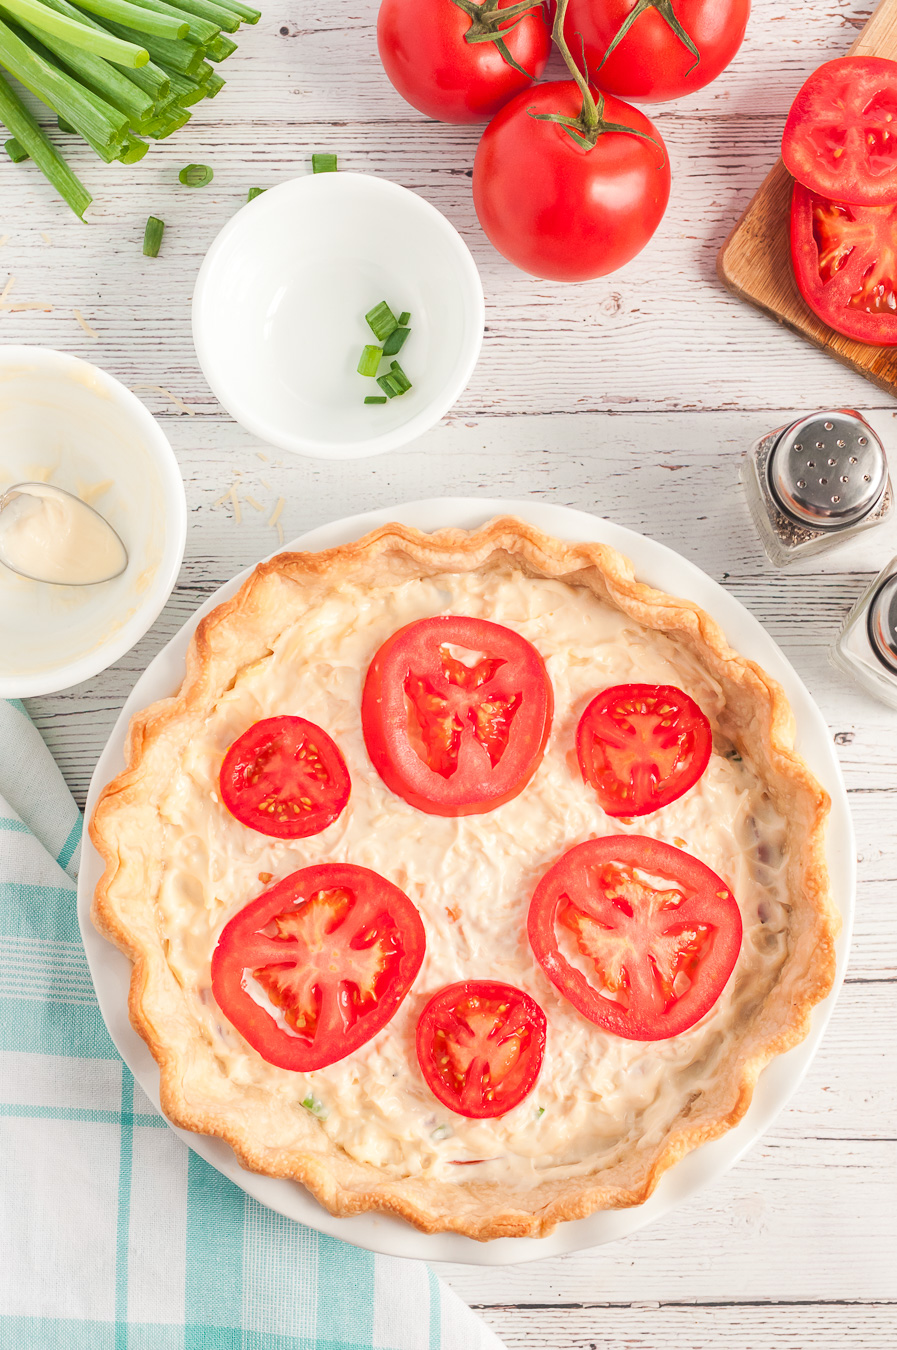 Adding a layer of sliced tomatoes to tomato pie